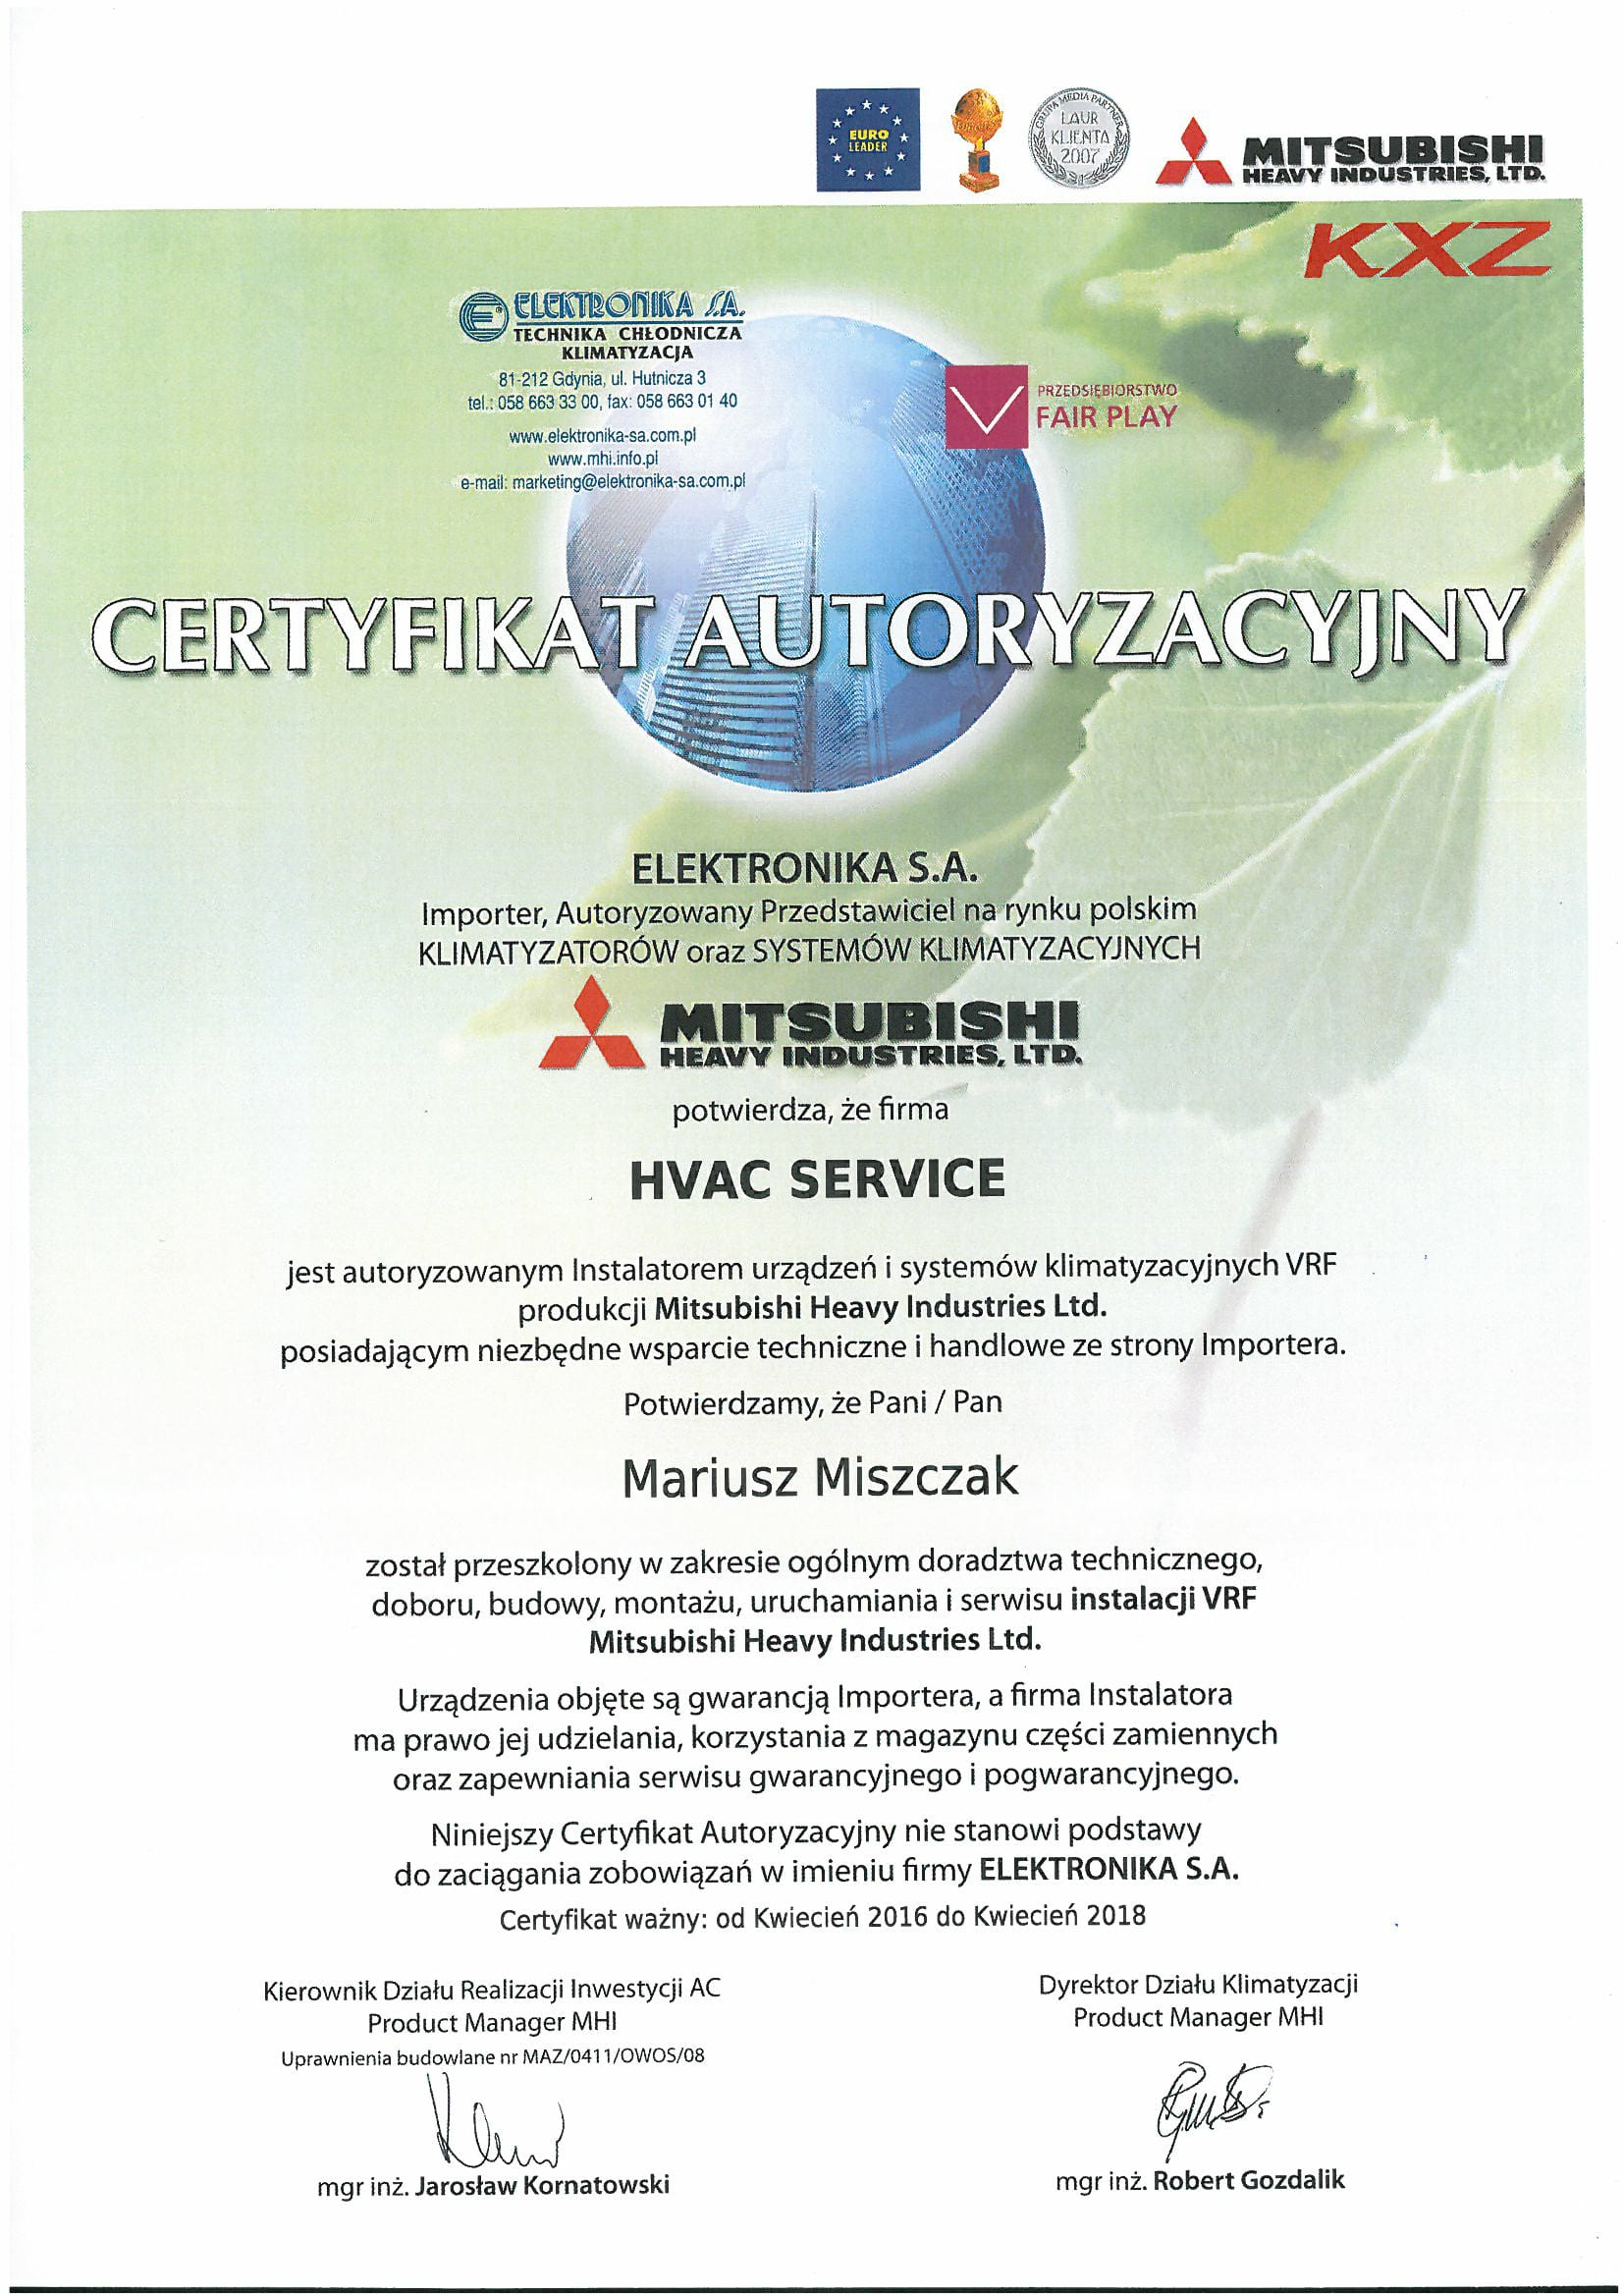 certificates – authorizations – HVAC Service